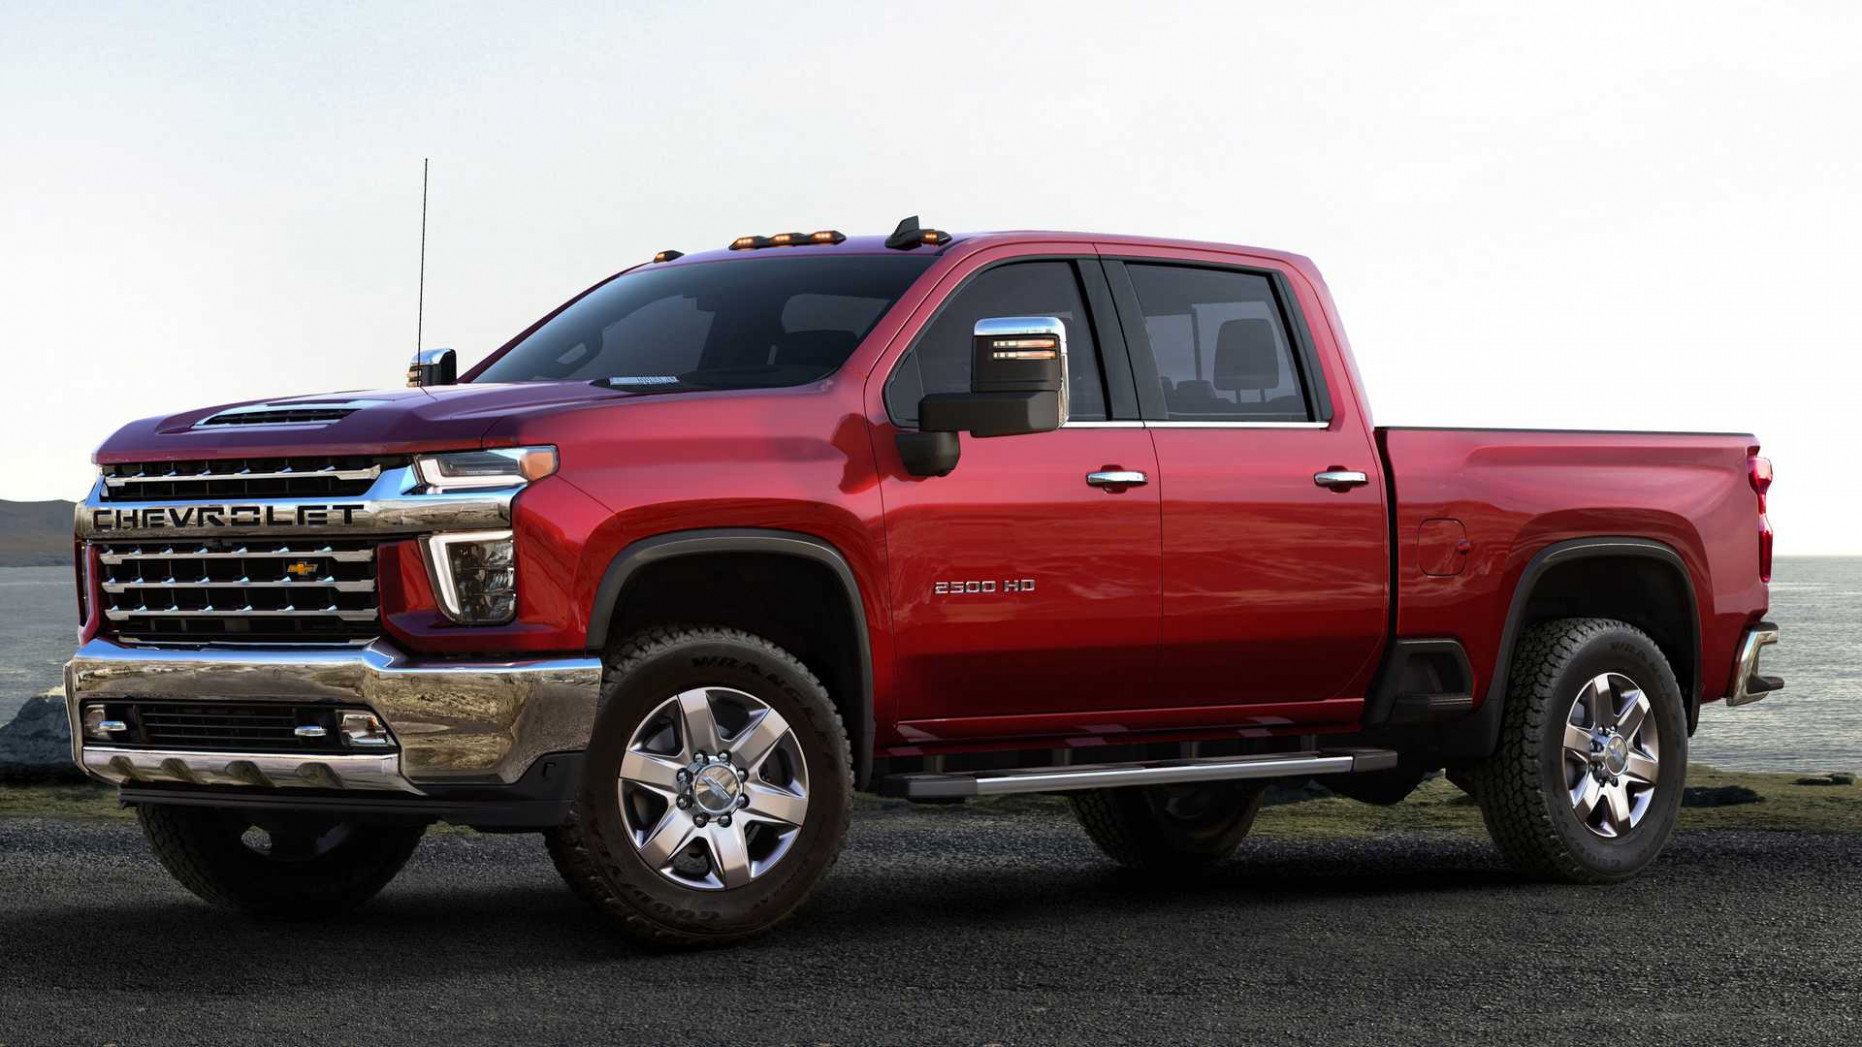 The Most Expensive 8 Chevy Silverado HD Costs $8,8 - chevrolet high country 2020 price